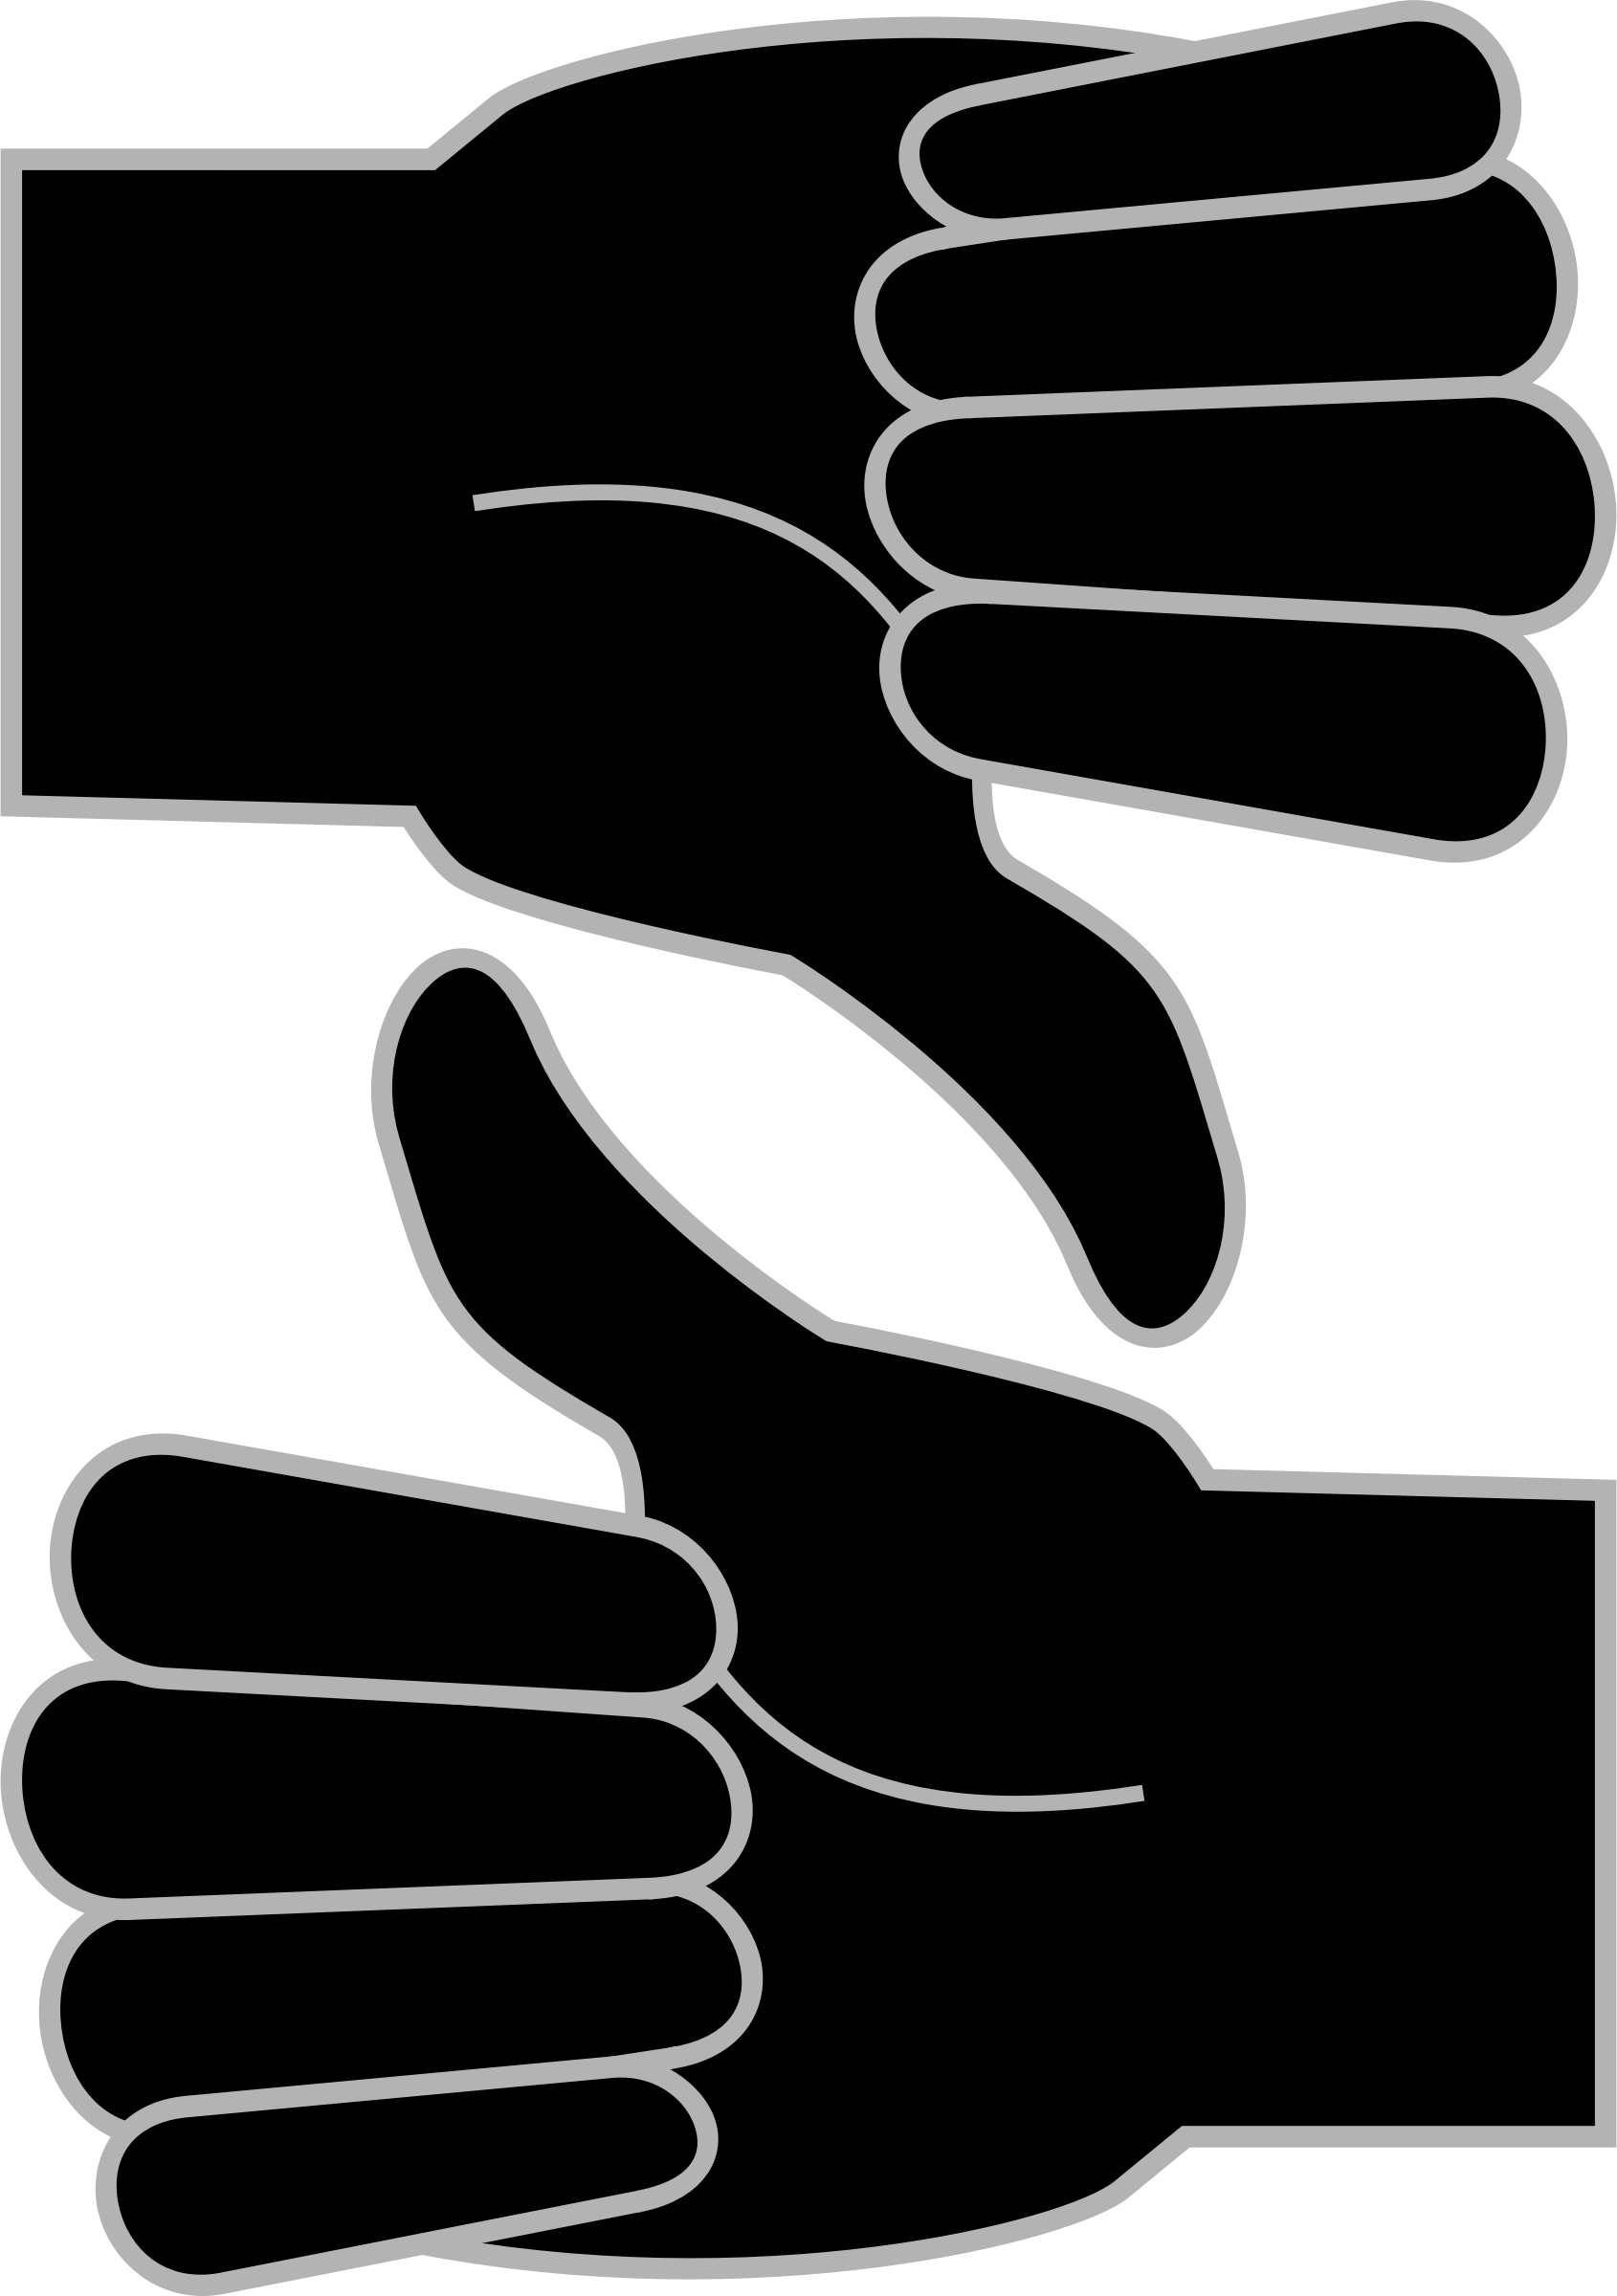 Black And White Thumbs Up | Free download on ClipArtMag